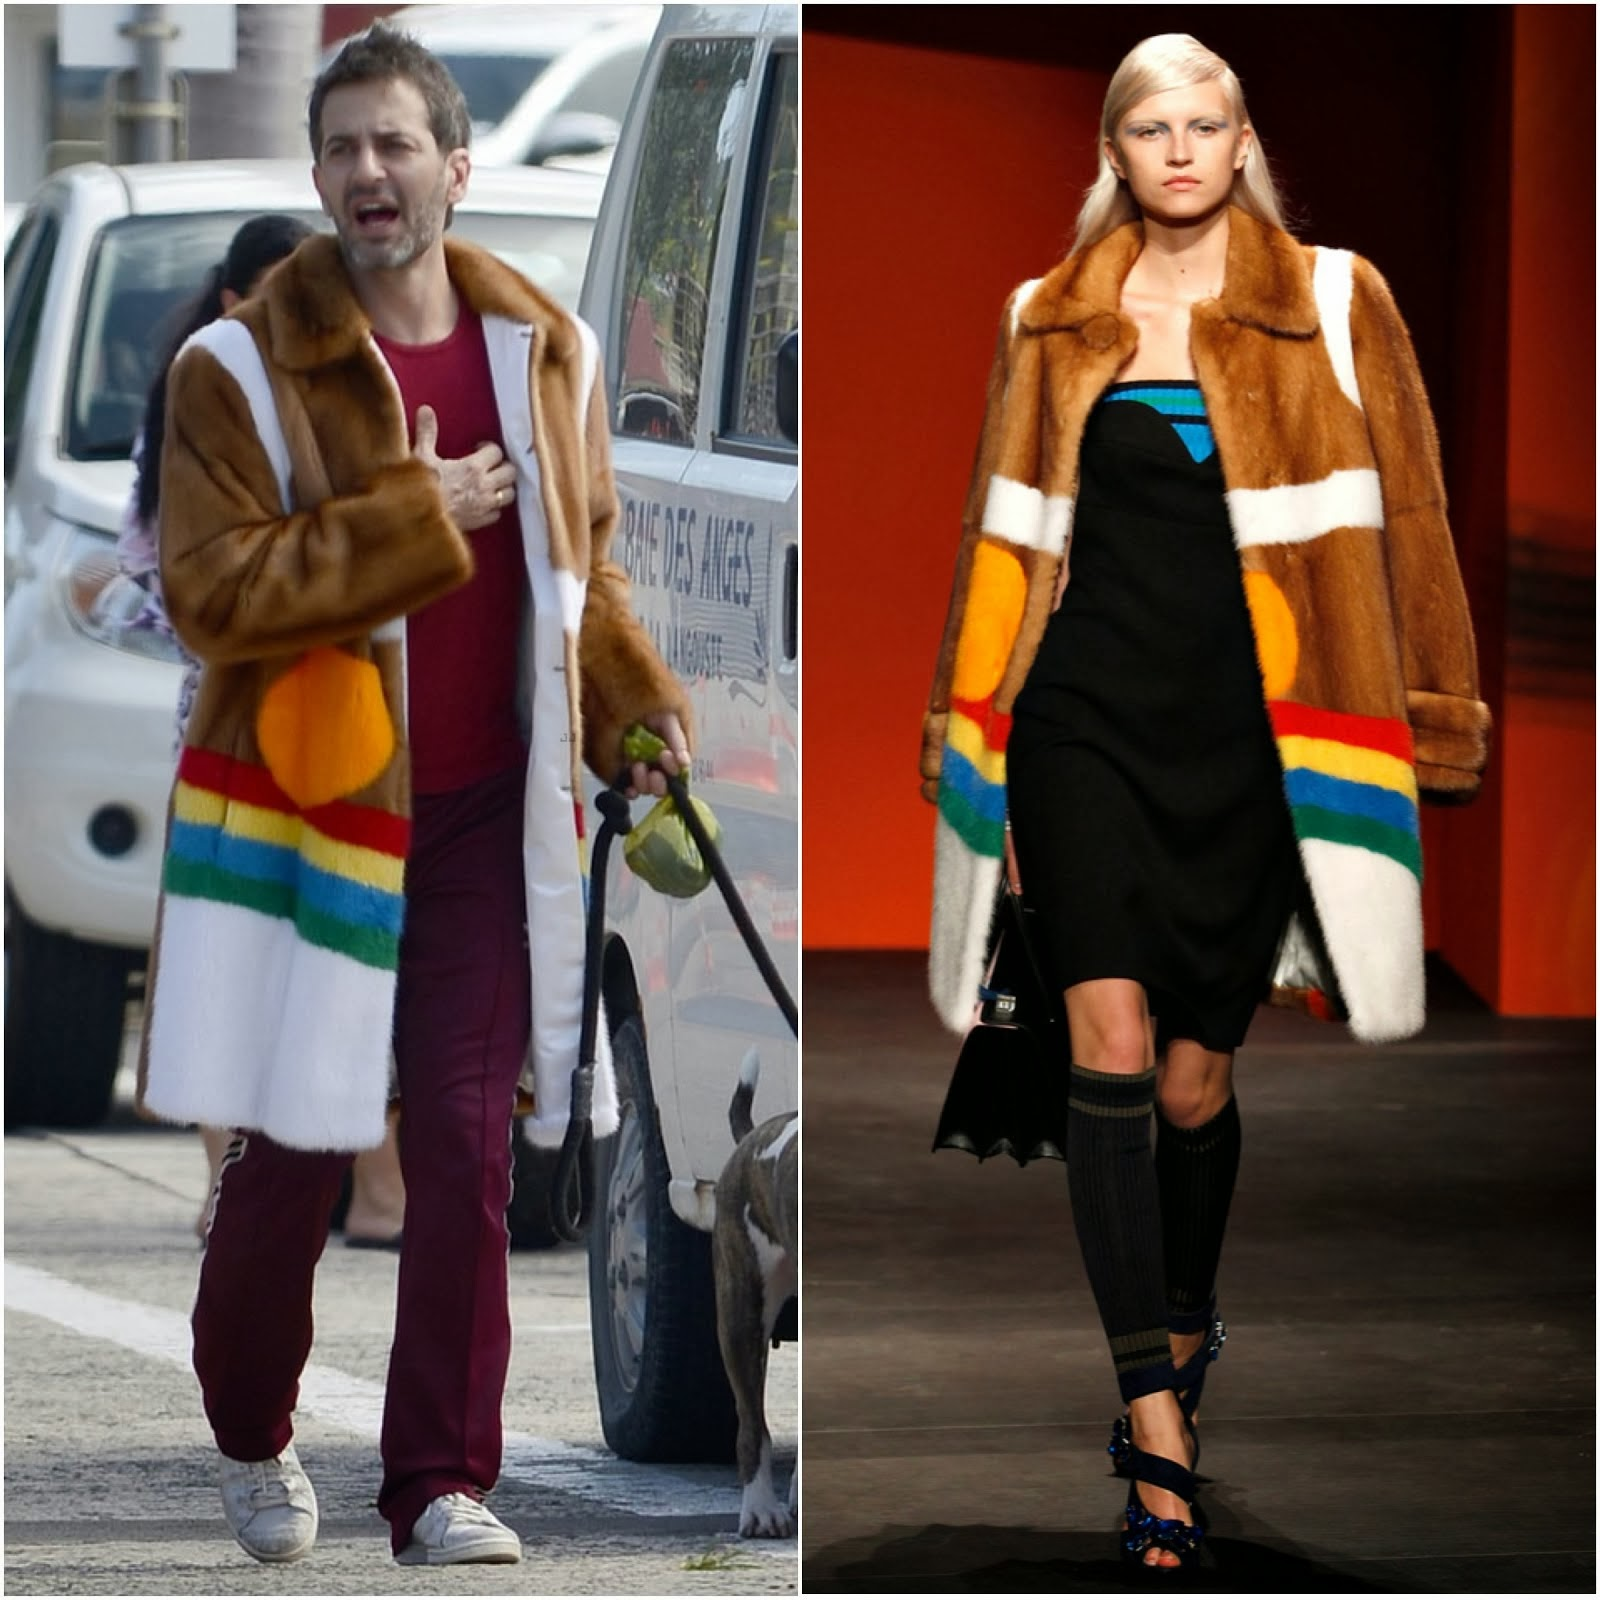 Marc Jacobs in Prada Spring Summer 2014 - New York Street Style